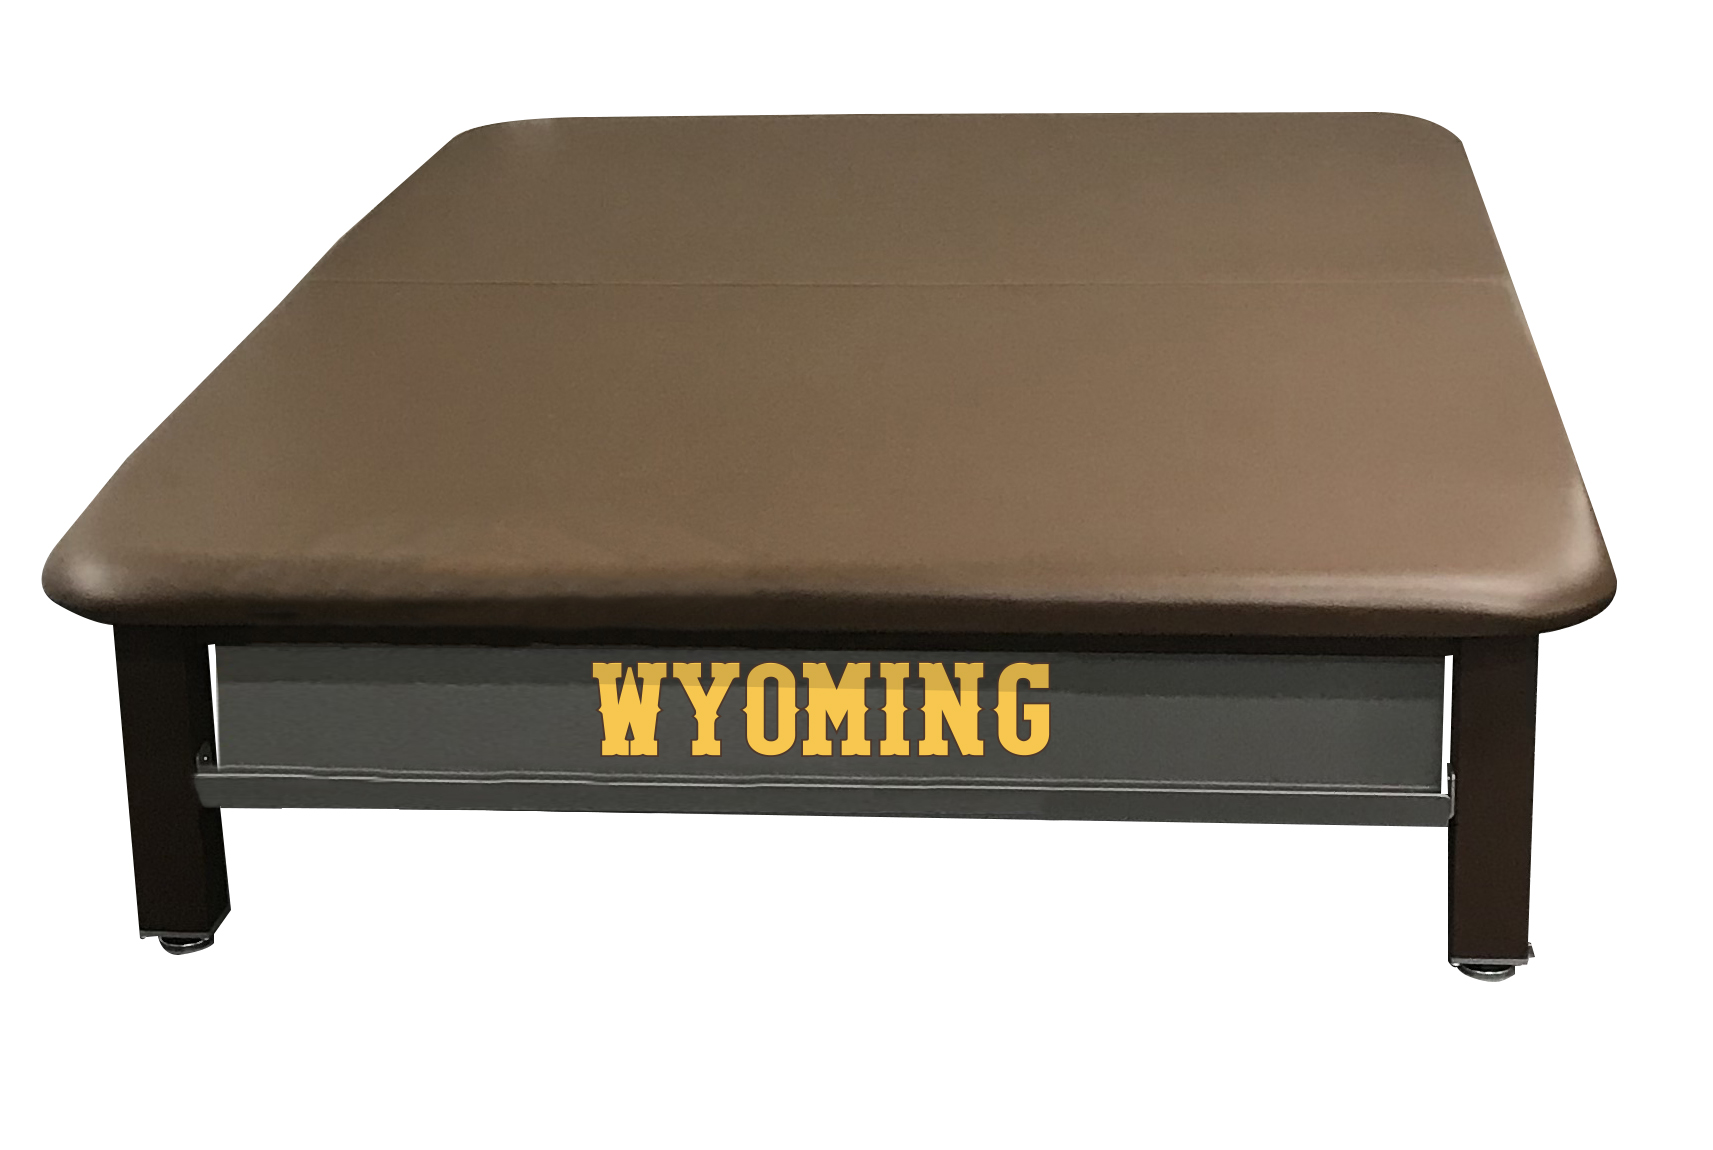 University of Wyoming-(Mat Table)